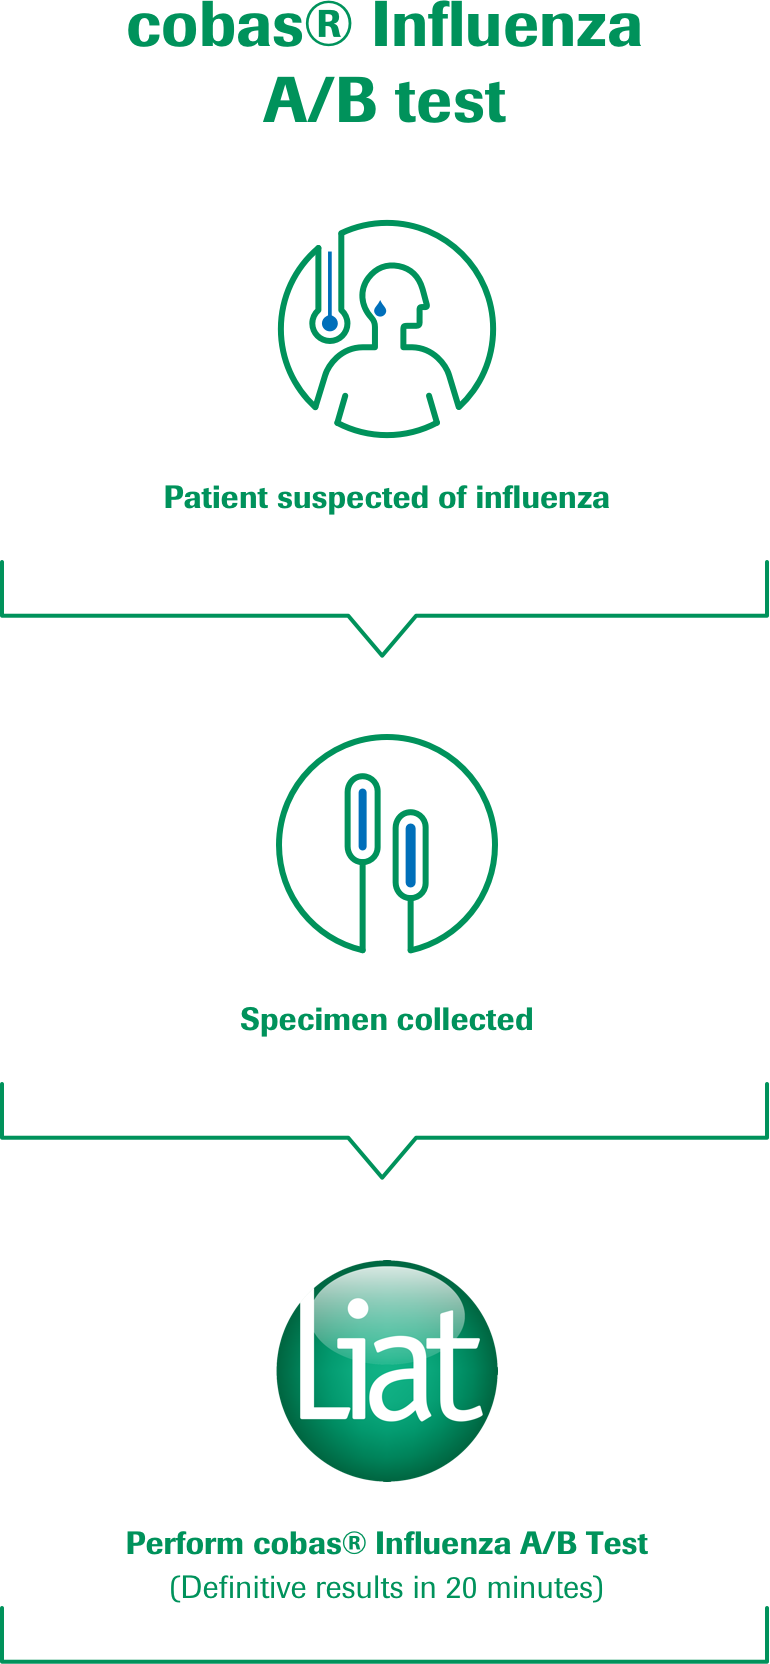 The cobas® Influenza A/B test provides definite results within 20 minutes – much faster than conventional methods.